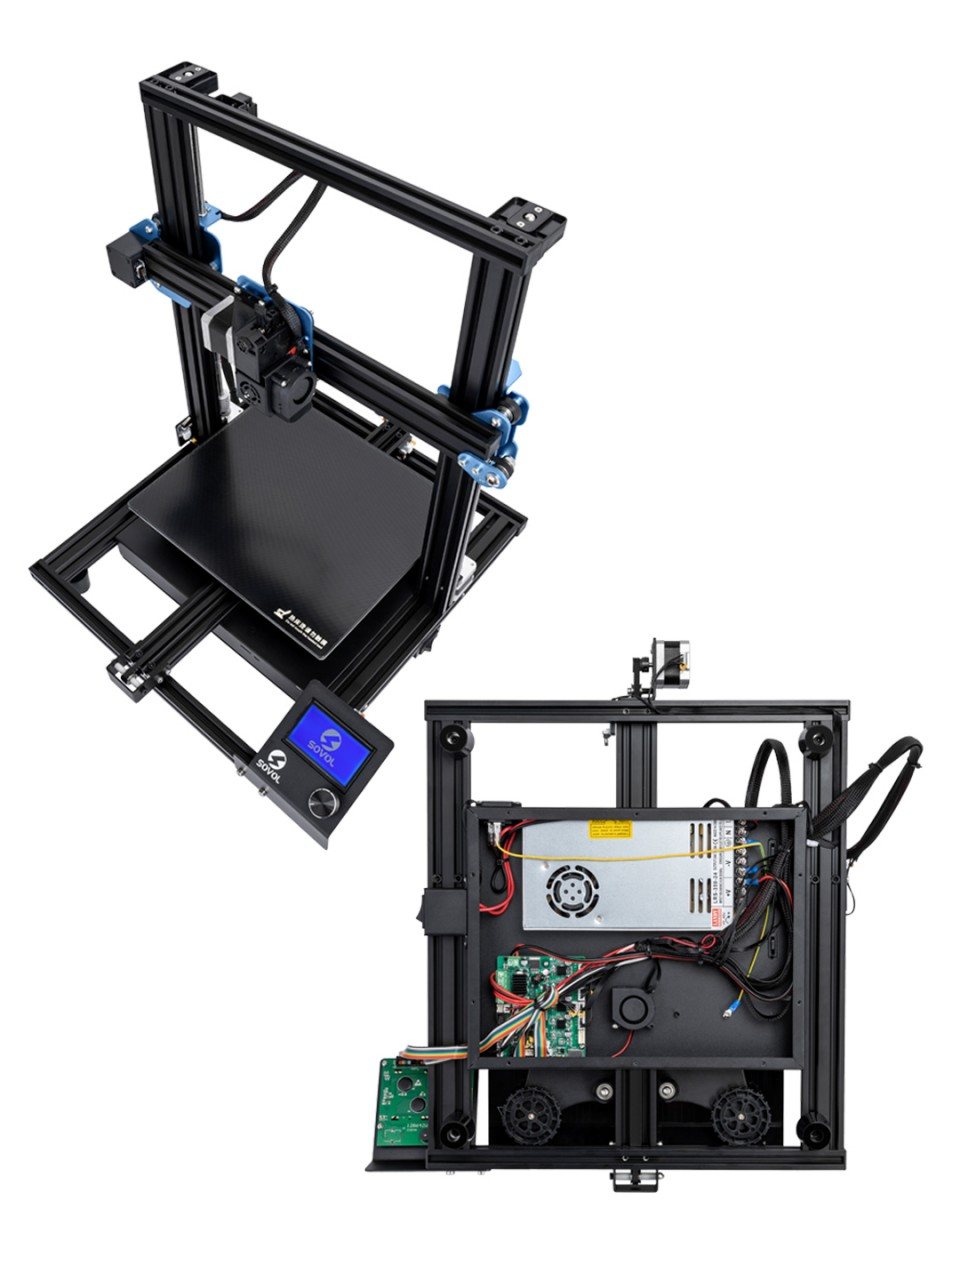 What's New In The 3D Printer World